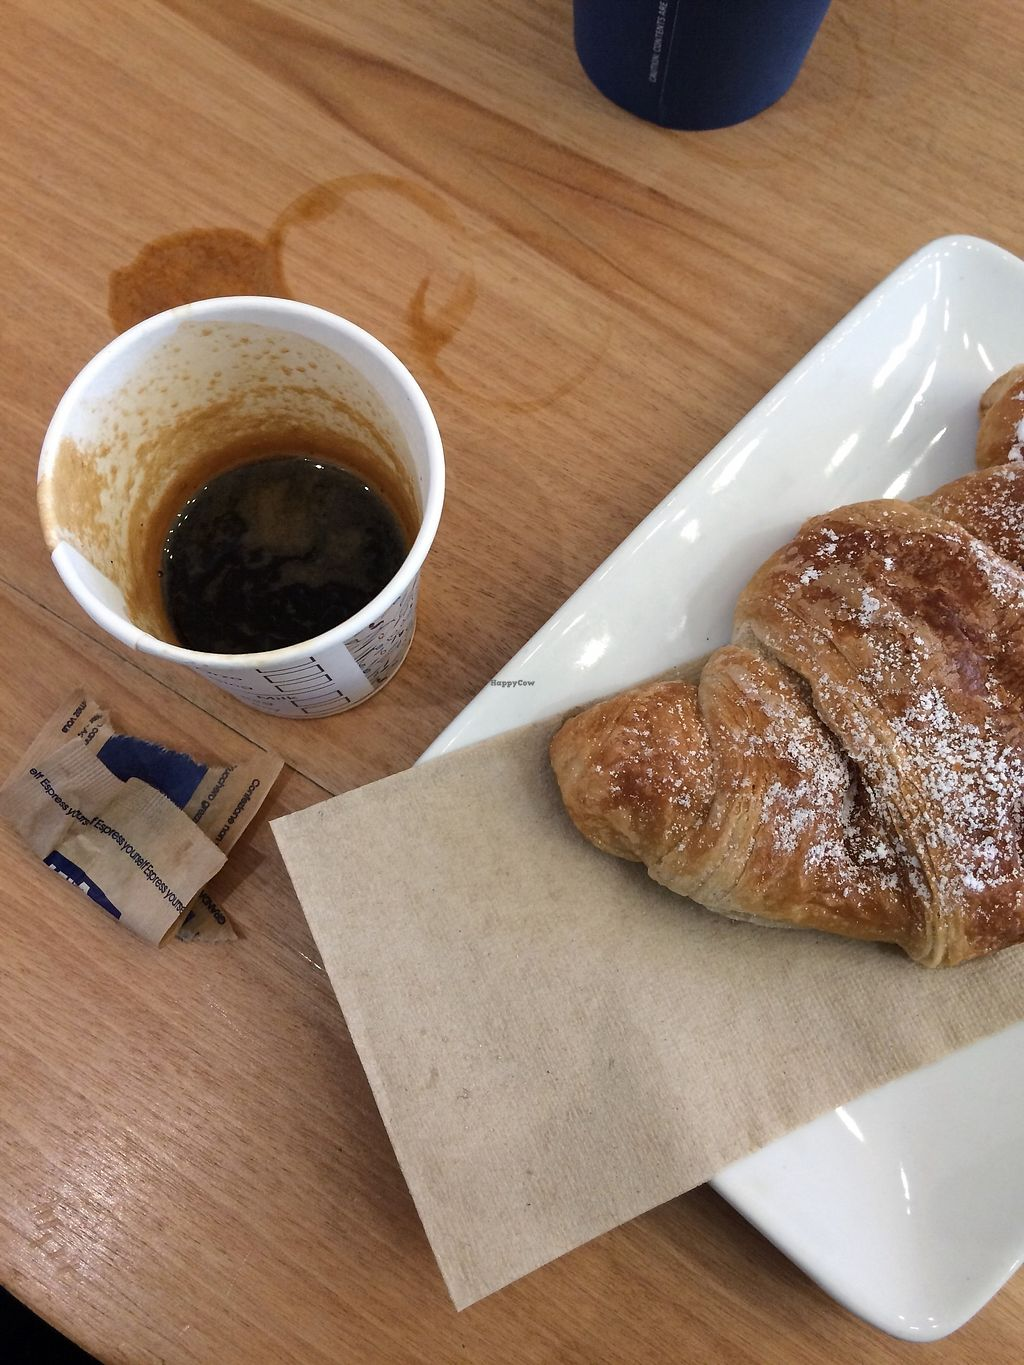 """Photo of Natoo  by <a href=""""/members/profile/siderealfire"""">siderealfire</a> <br/>Vegan empty croissant and espresso (I spilled it myself) <br/> March 28, 2018  - <a href='/contact/abuse/image/89296/377409'>Report</a>"""